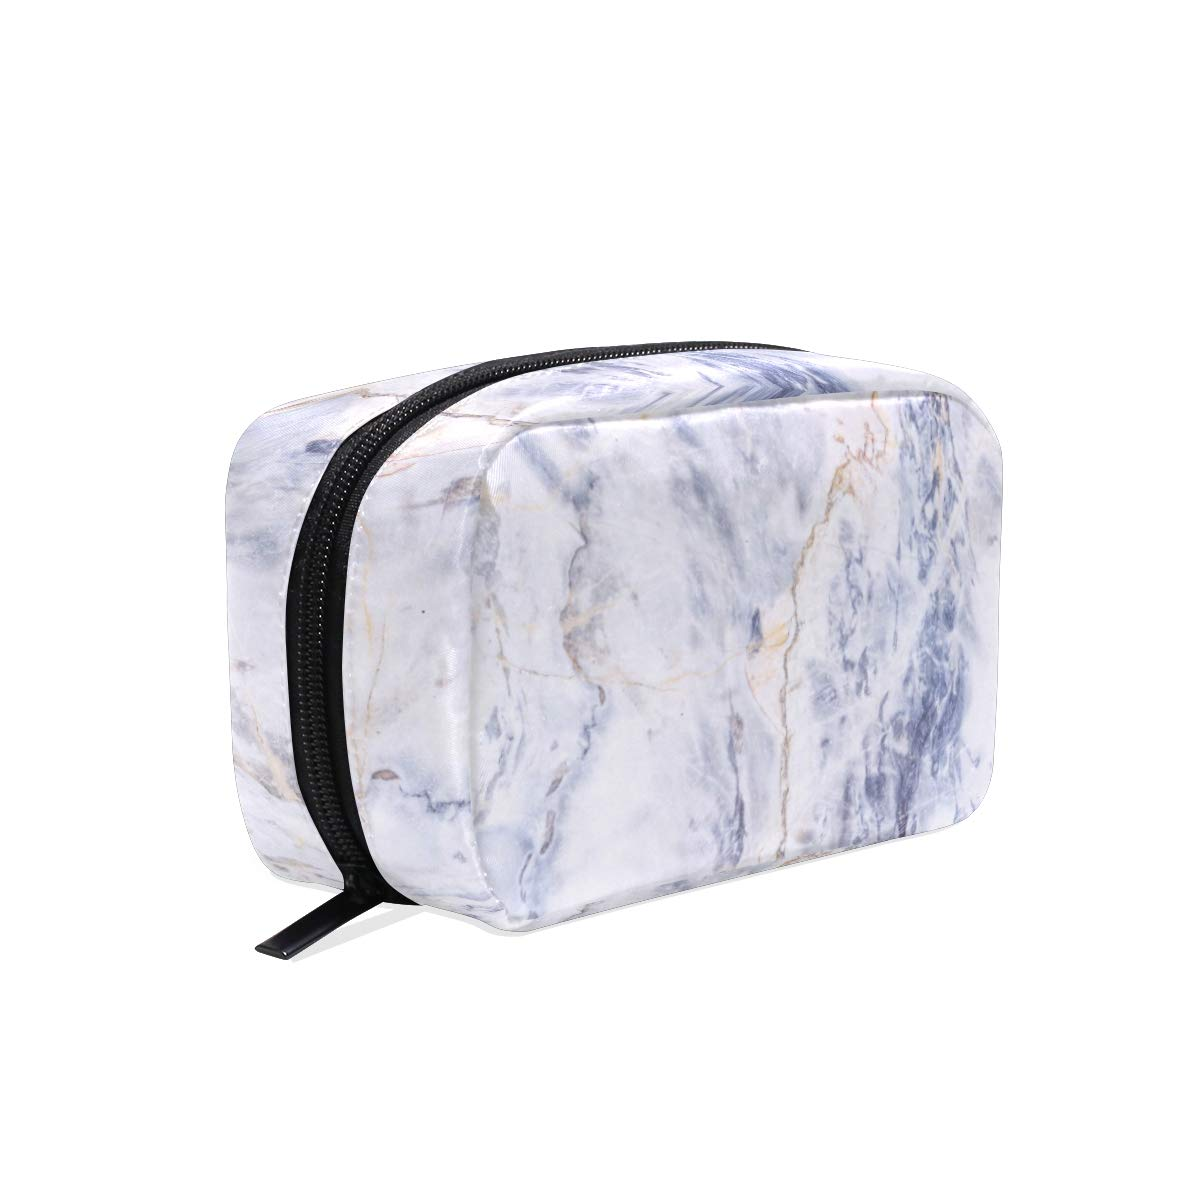 ALAZA Gray Marble Stone Texture Makeup Cosmetic Portable Pouch Bag Organizer Capacity Storage Bag Gift for Women Girls